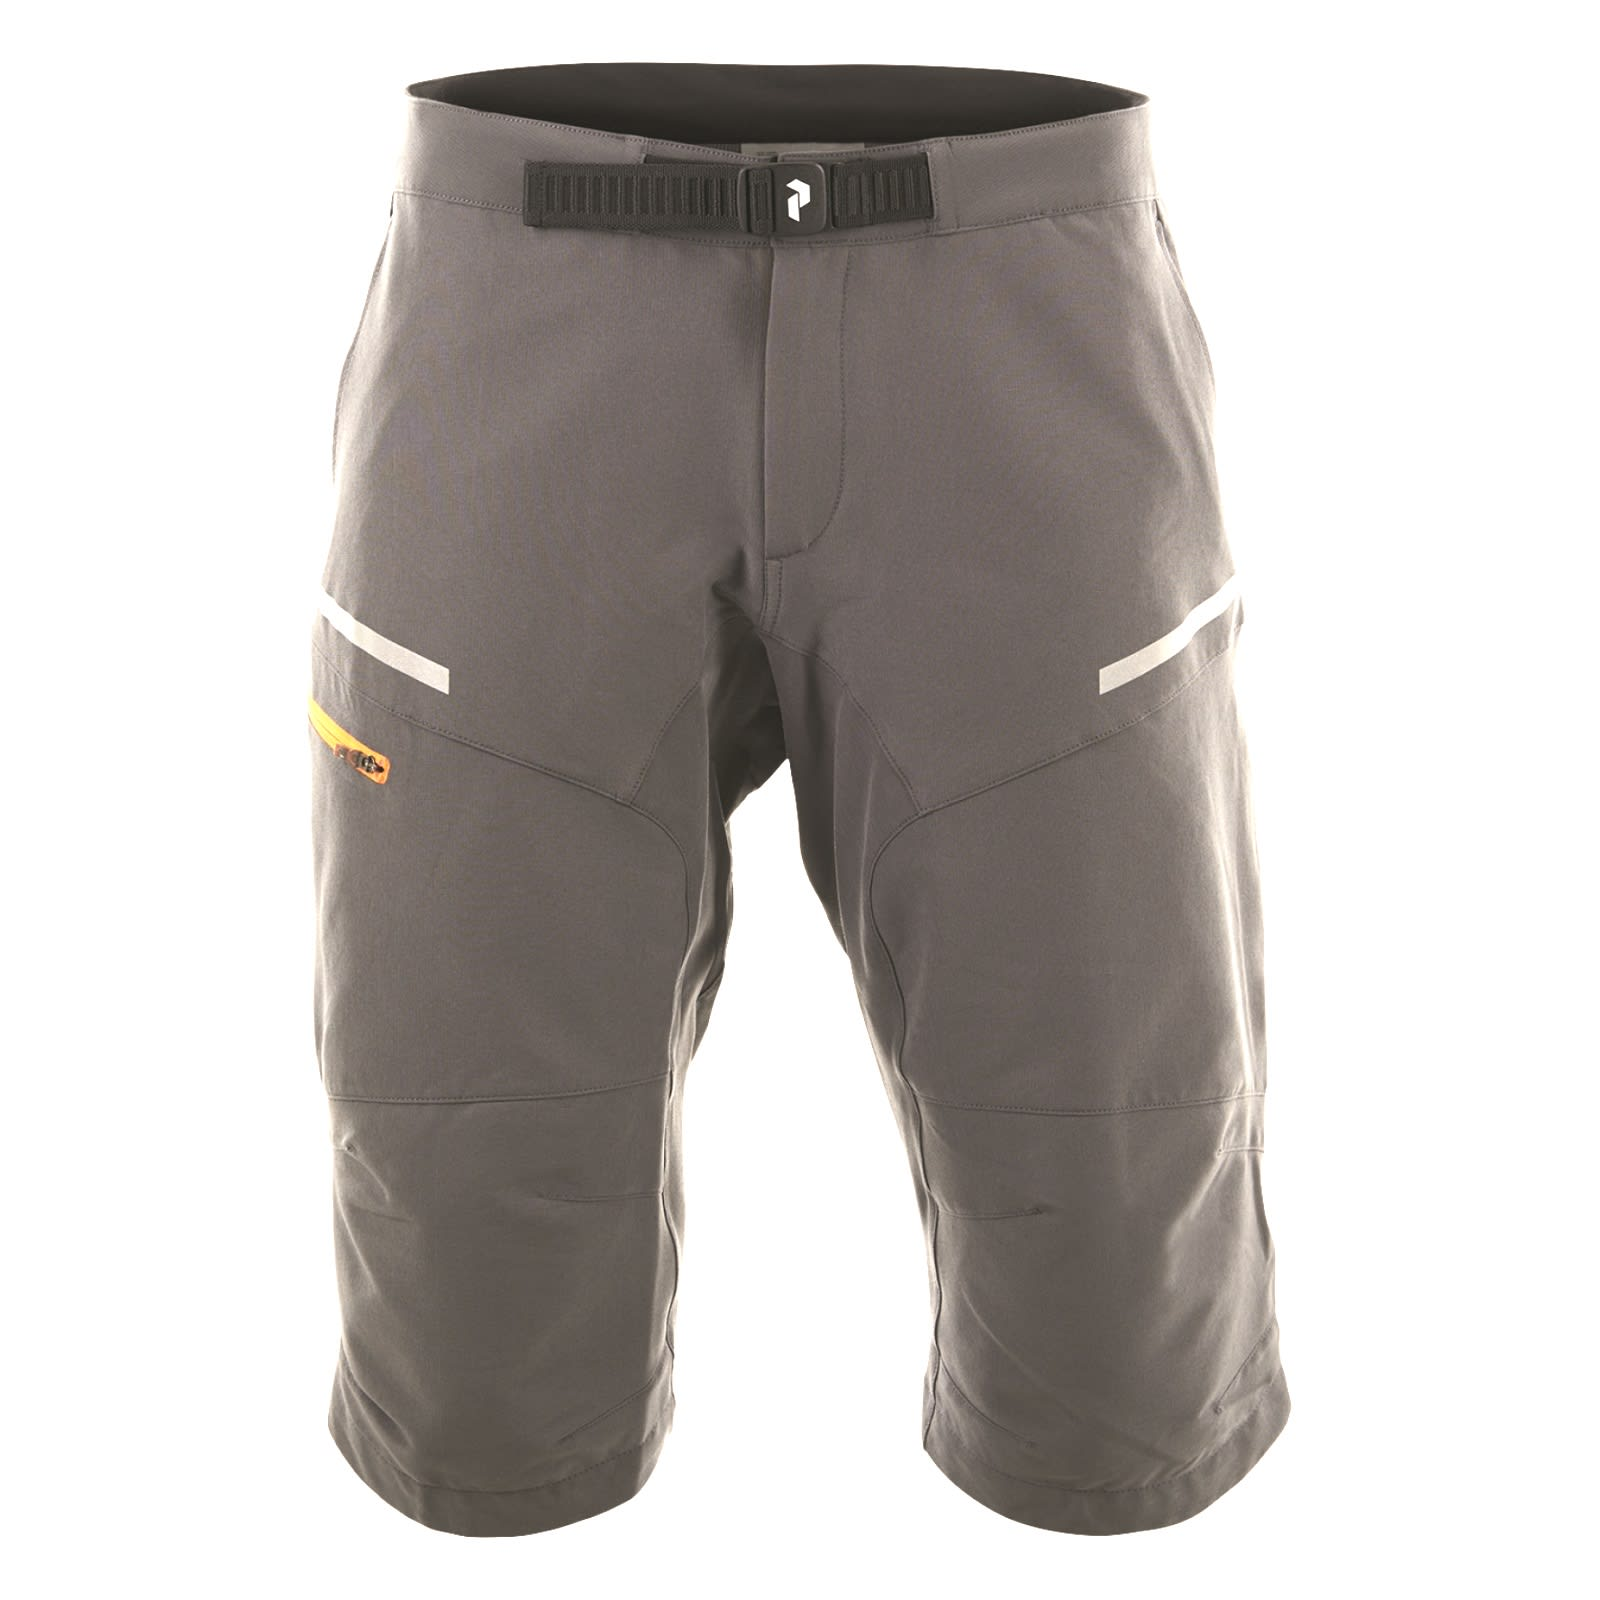 c6ddbd5c38 Buy Peak Performance Mens Waikato Shorts From Outnorth